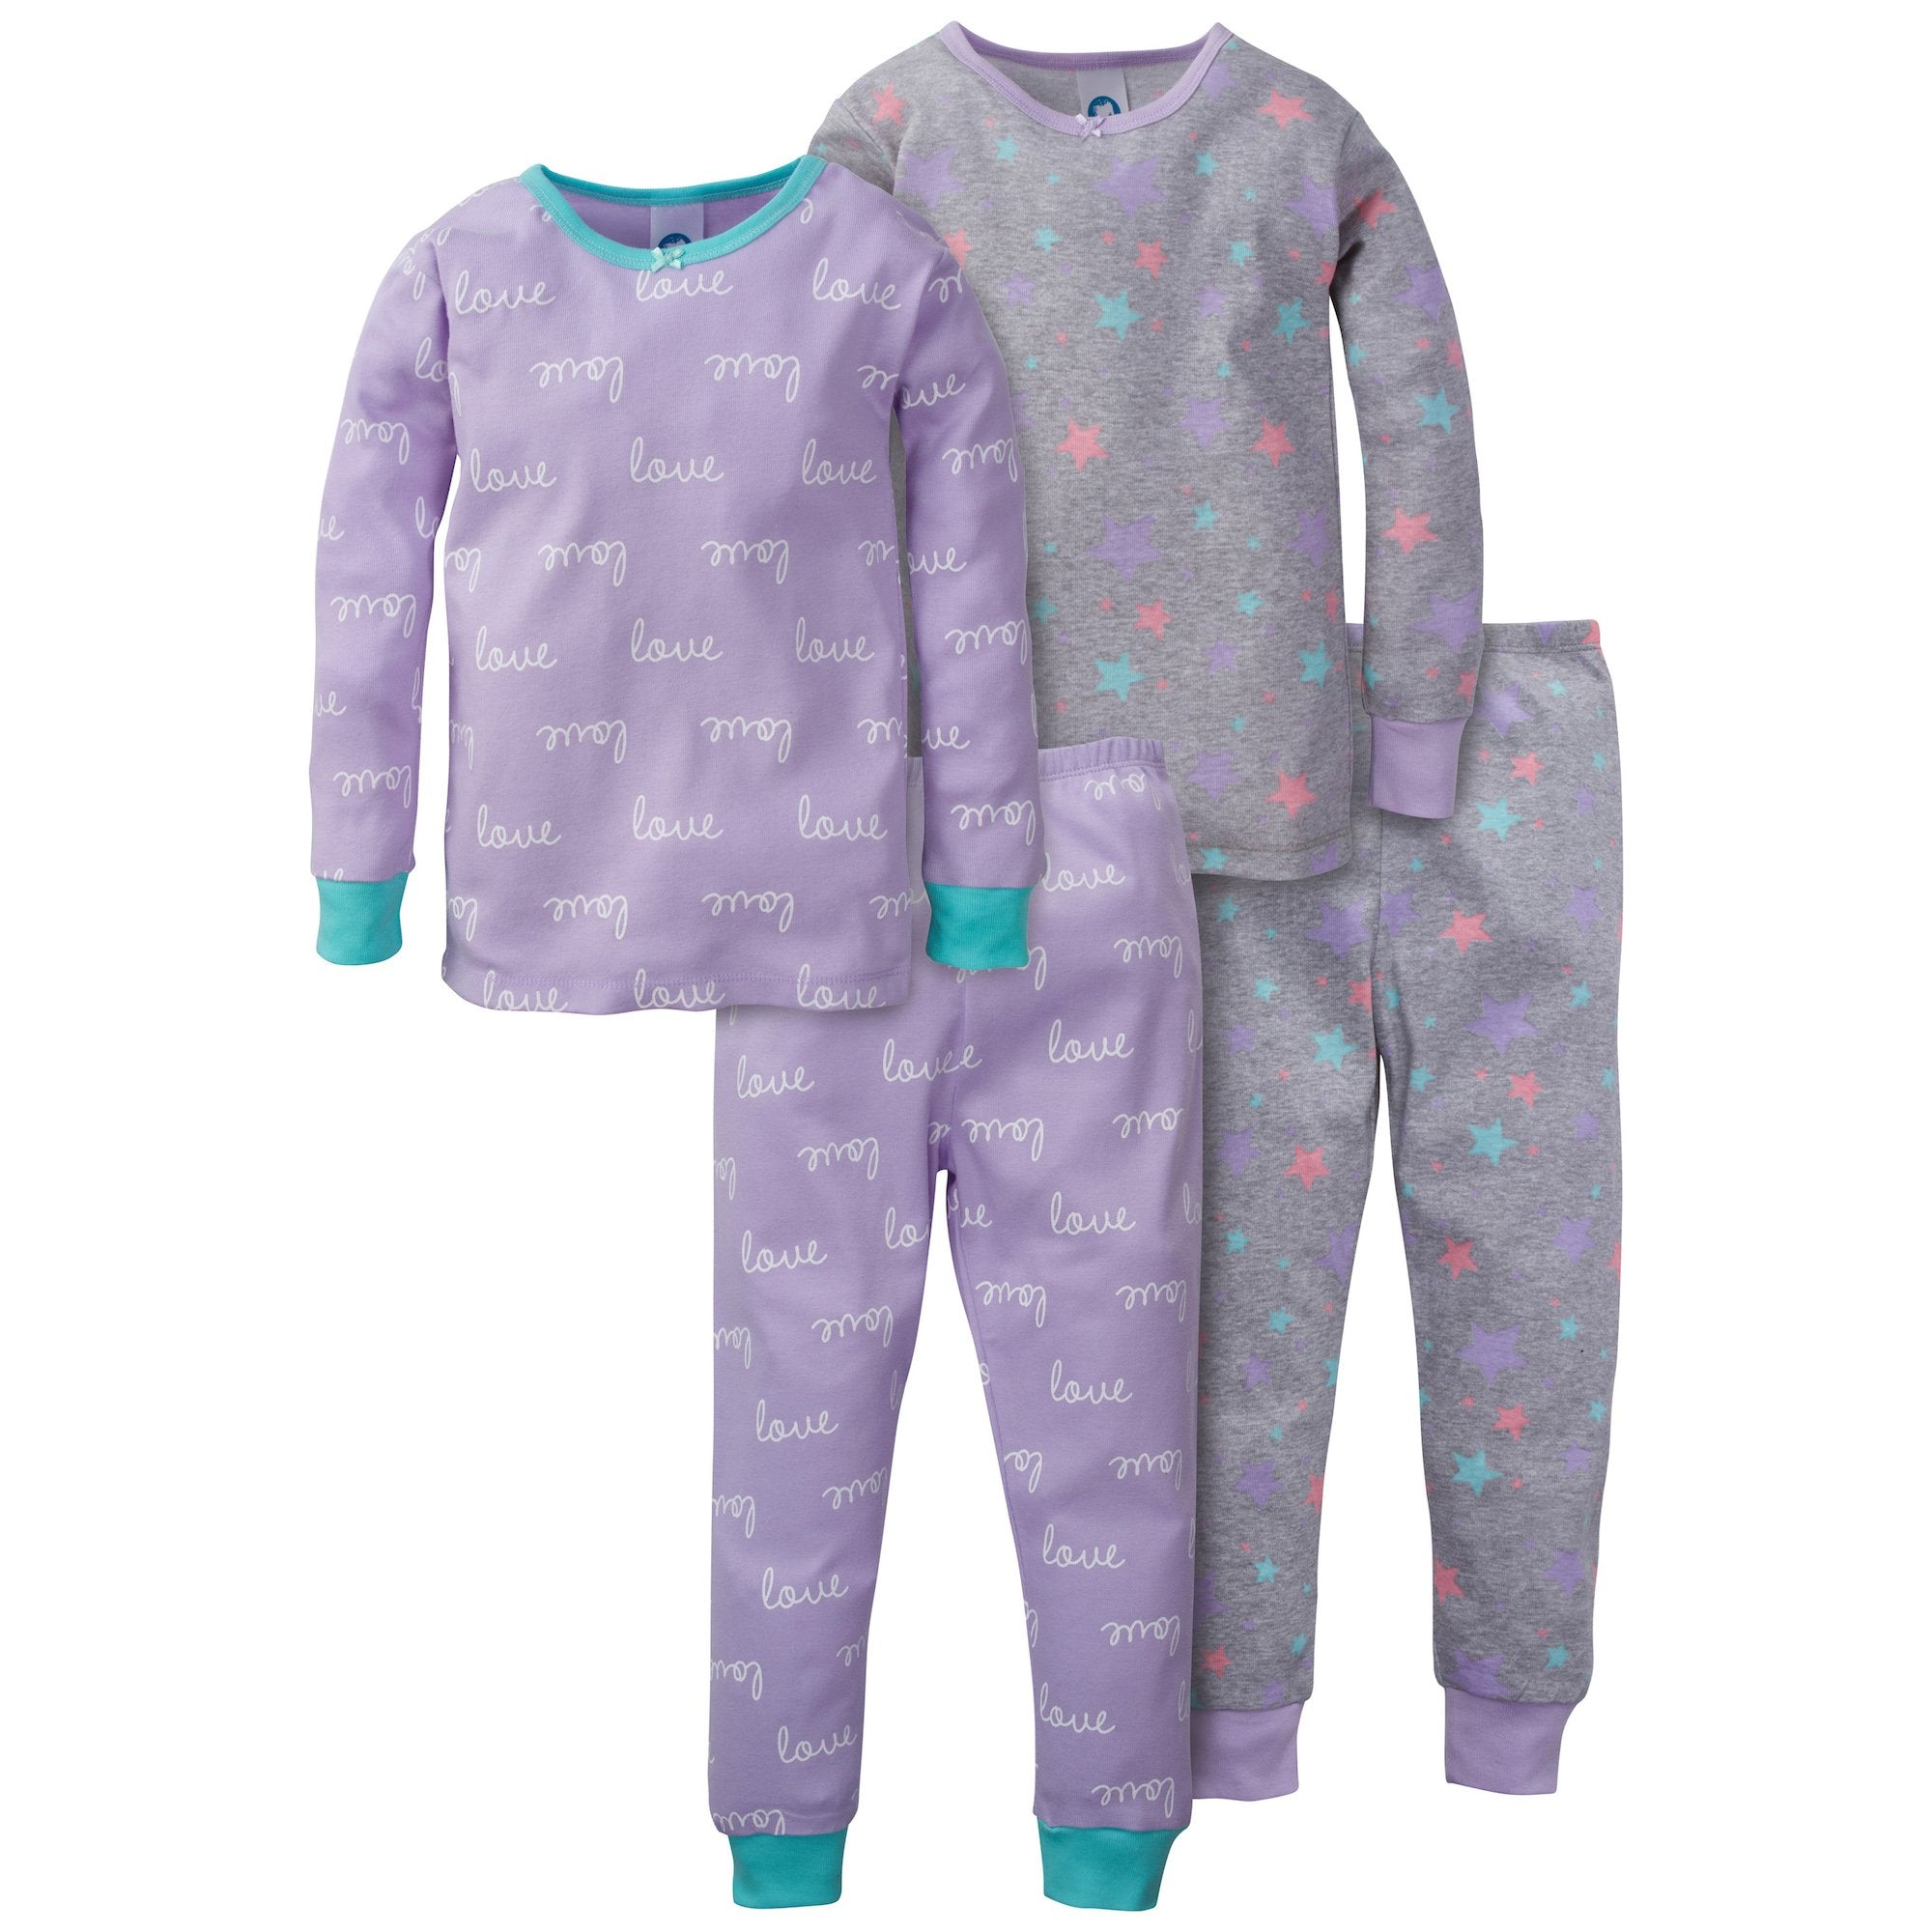 4-Piece Girls Love Organic Pajama Set